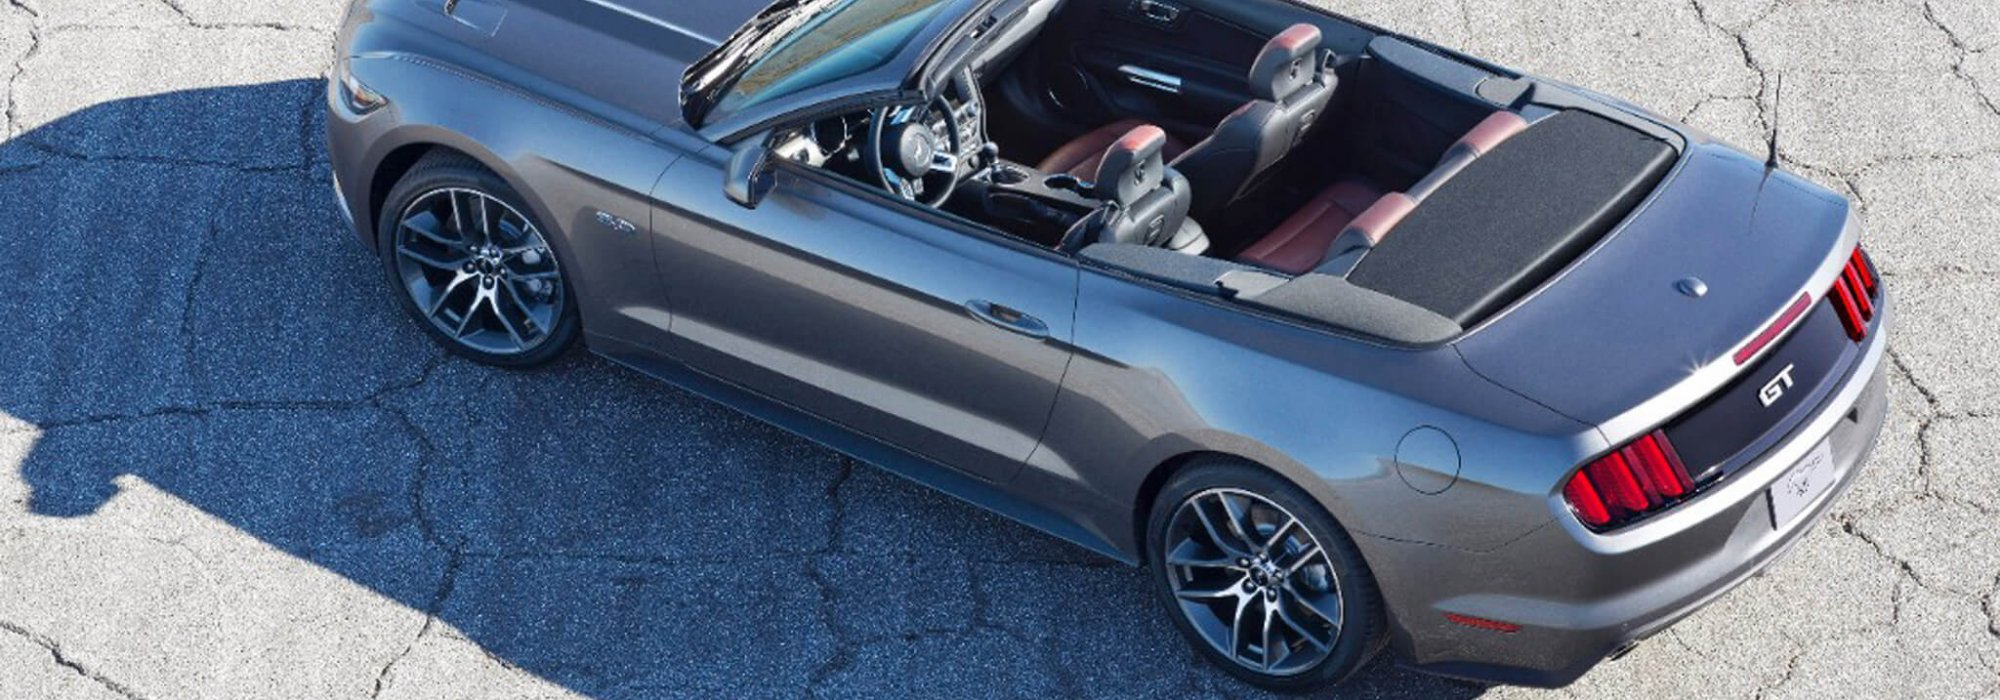 Ford Mustang - TheMust.fr